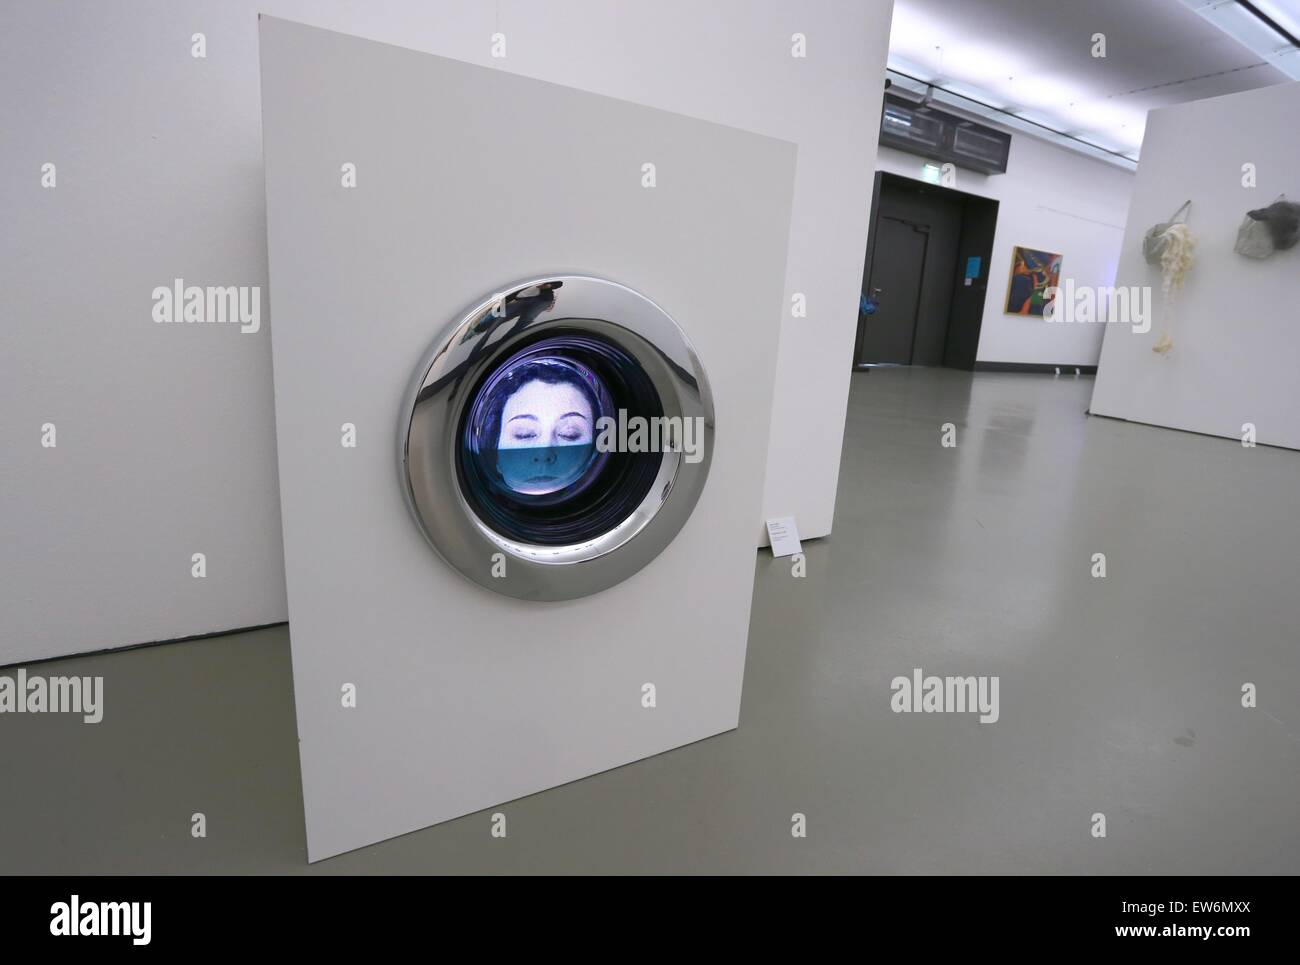 Wuerzburg, Germany. 18th June, 2015. An actress in a video is seen through the hatch of a stylised washing machine - Stock Image